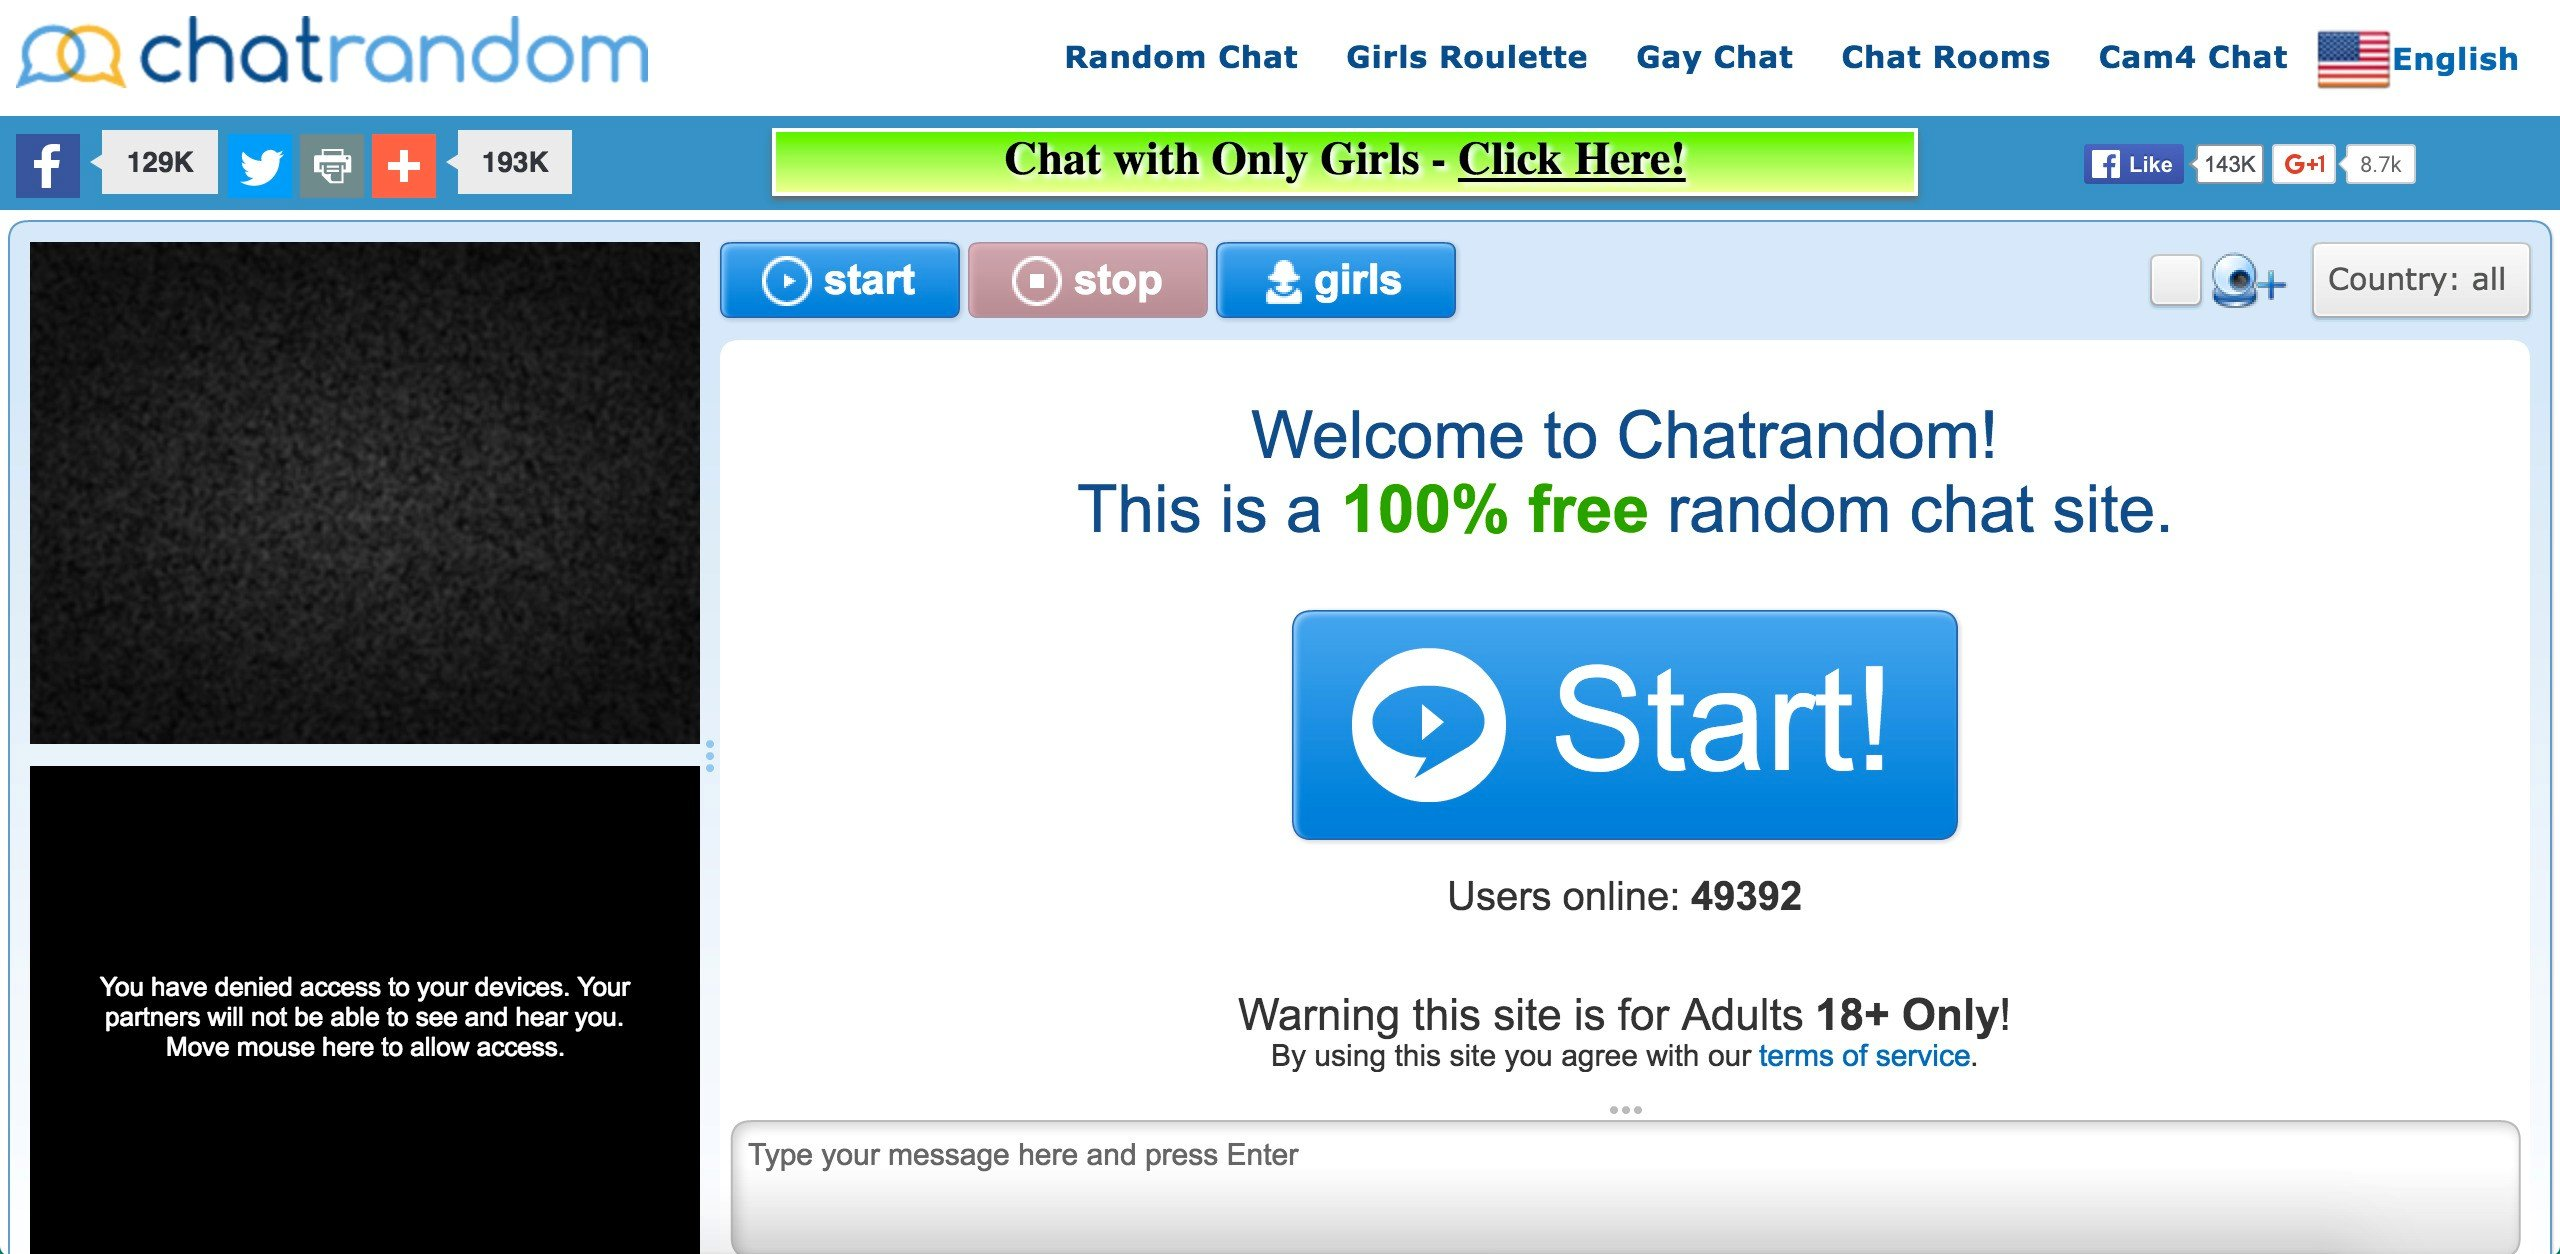 chatrandom site